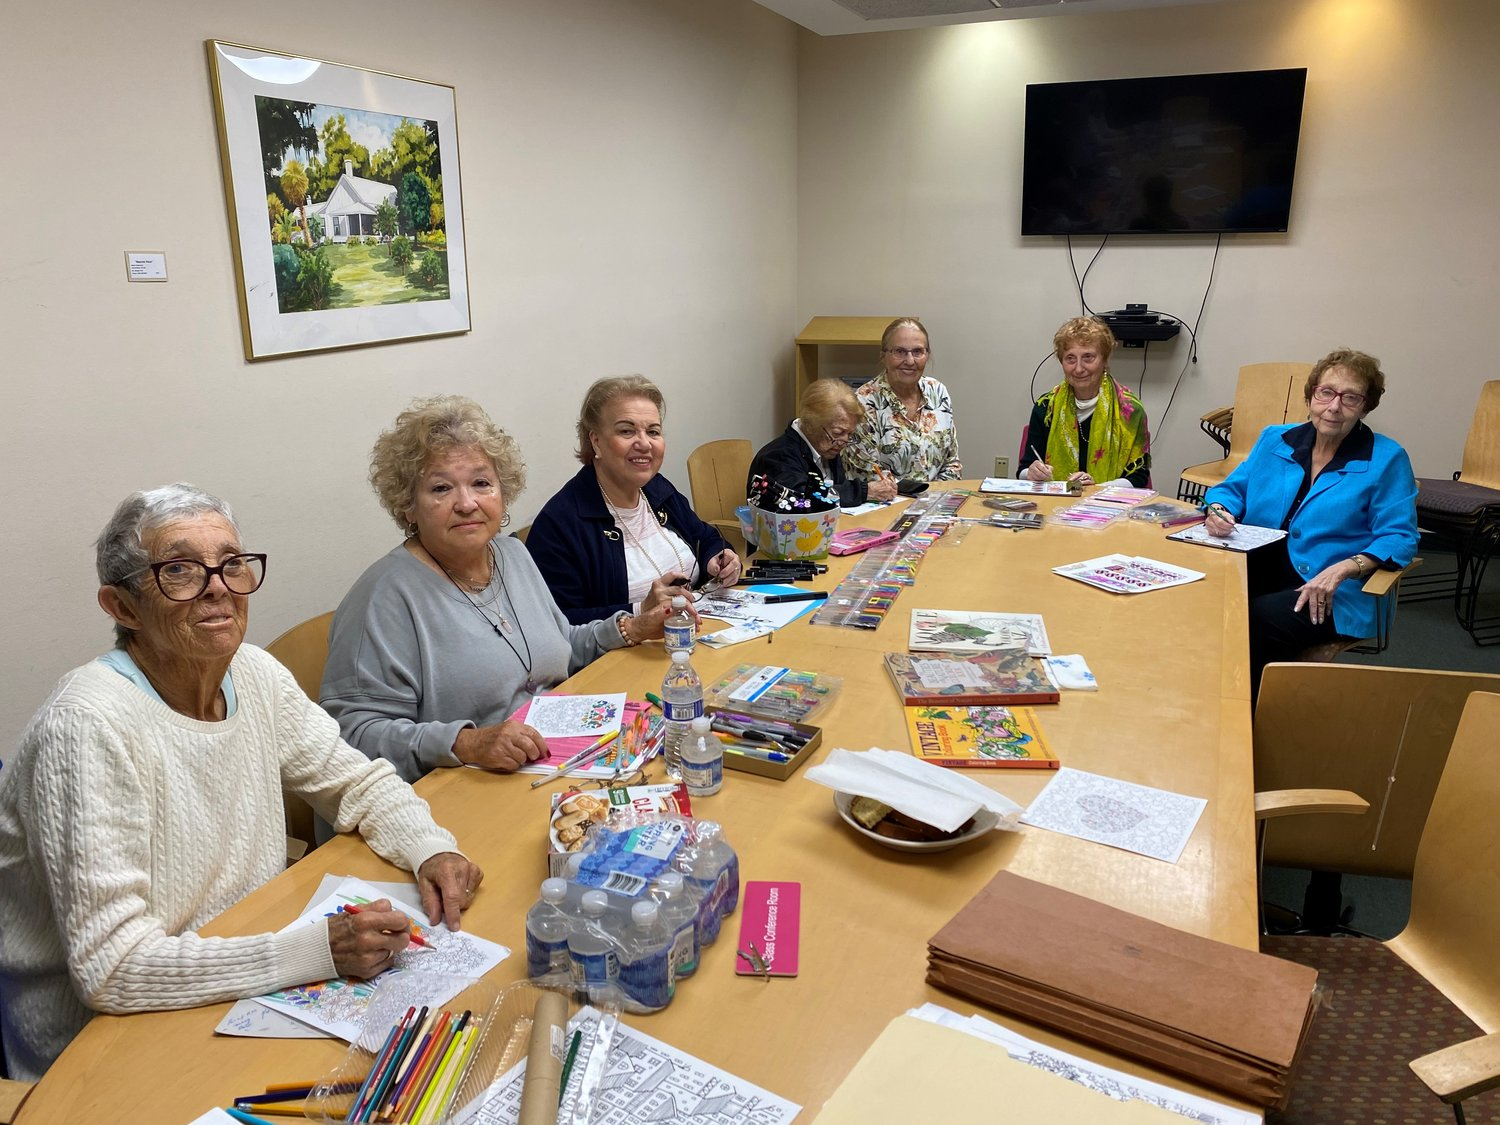 Members of the Adult Coloring Club at the Ponte Vedra Beach Branch Library meet Thursday, Feb. 20 in the library's Glass Room.